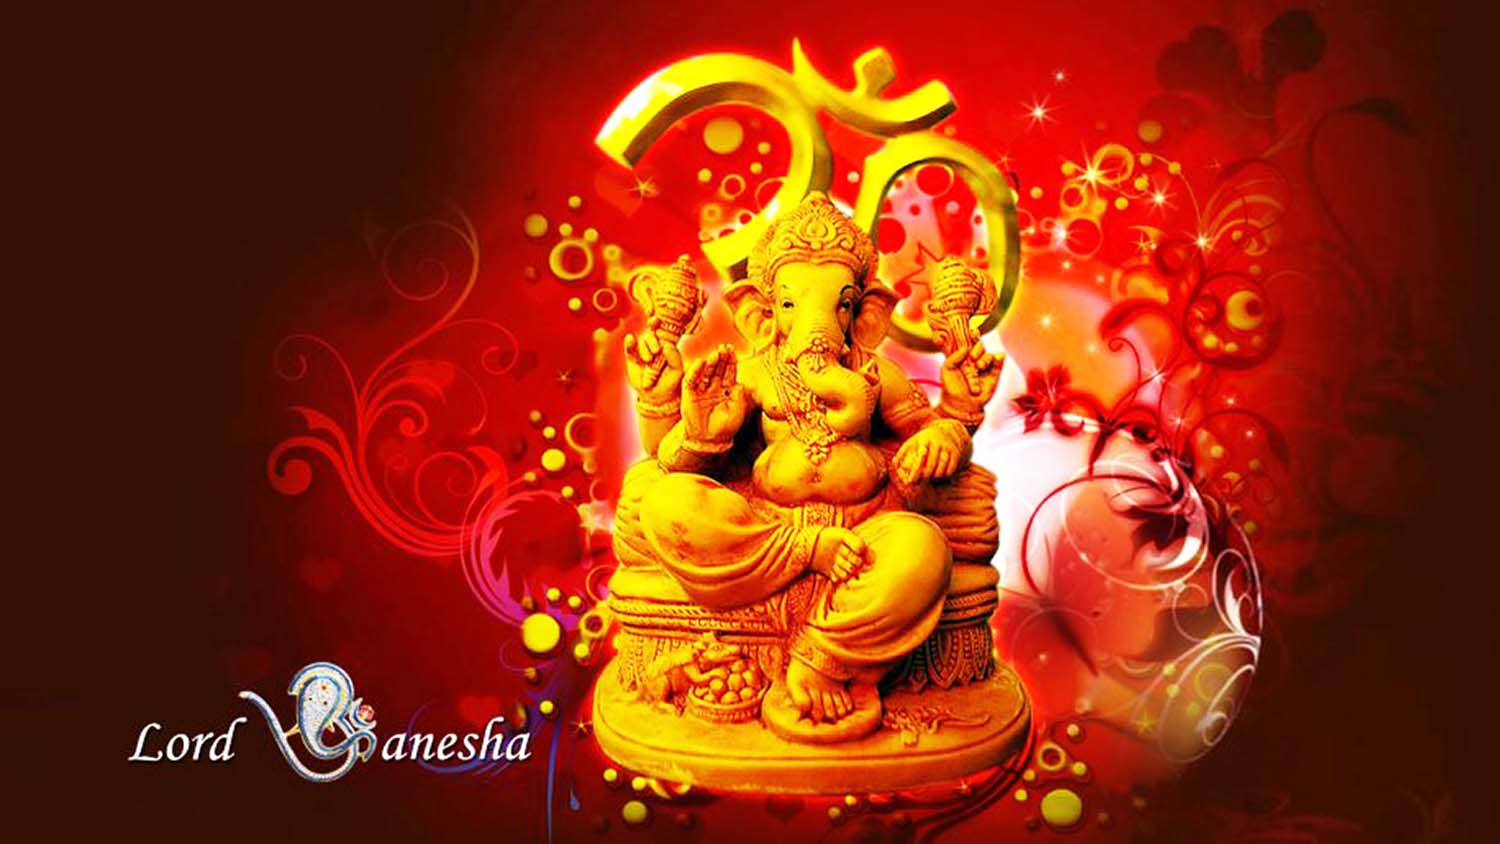 Lord Ganesha awesome photo!